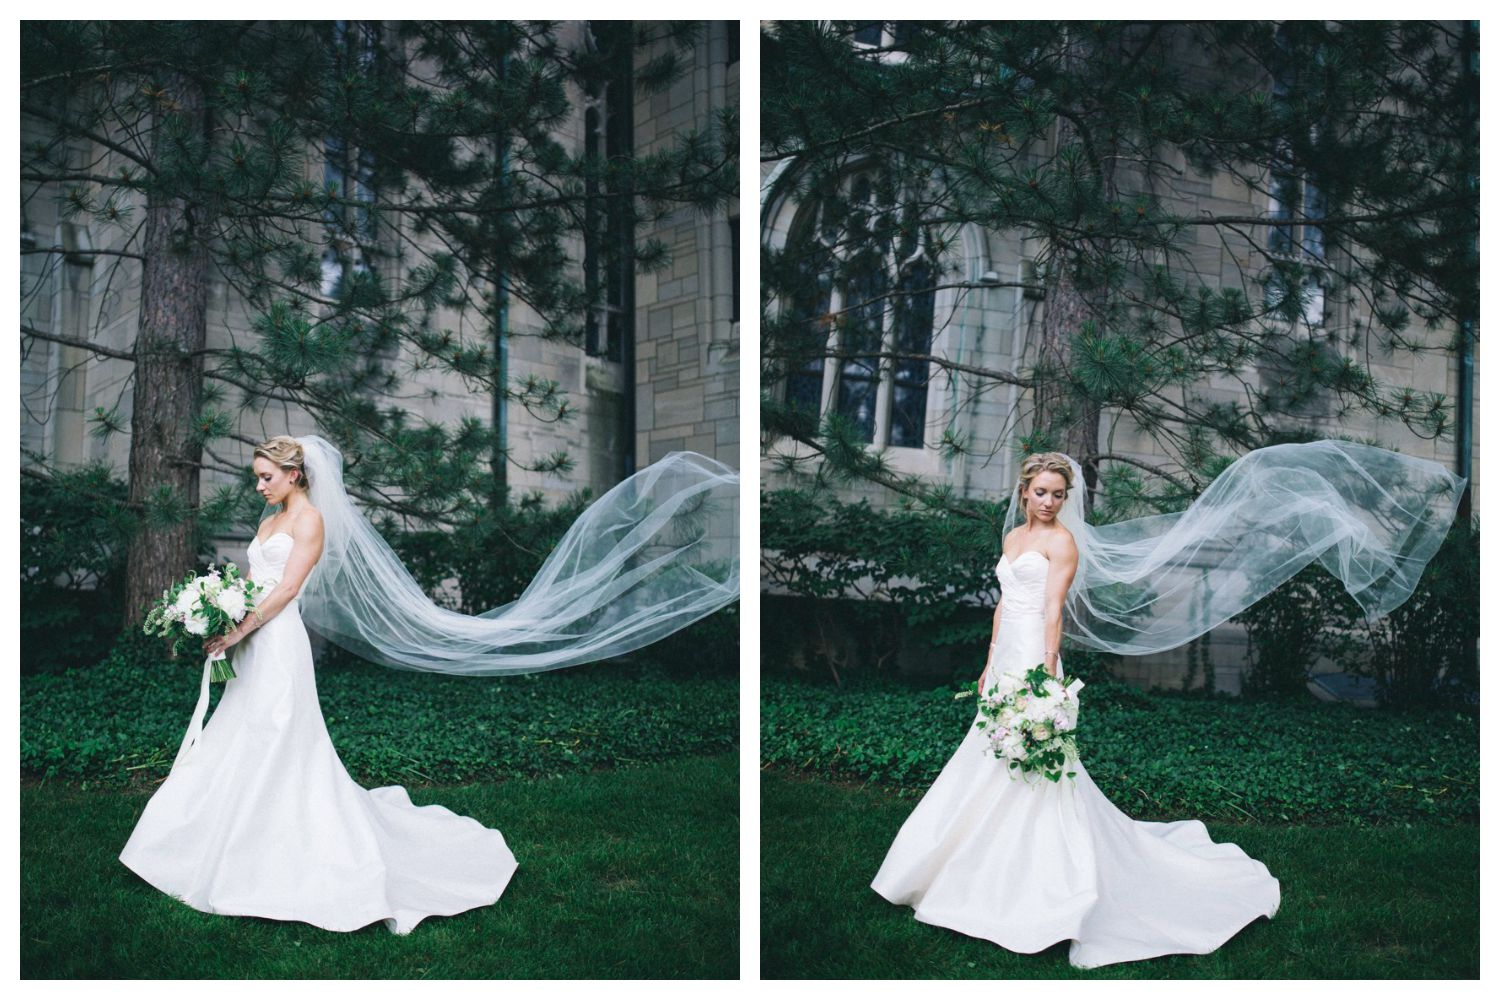 Wind whipped veil